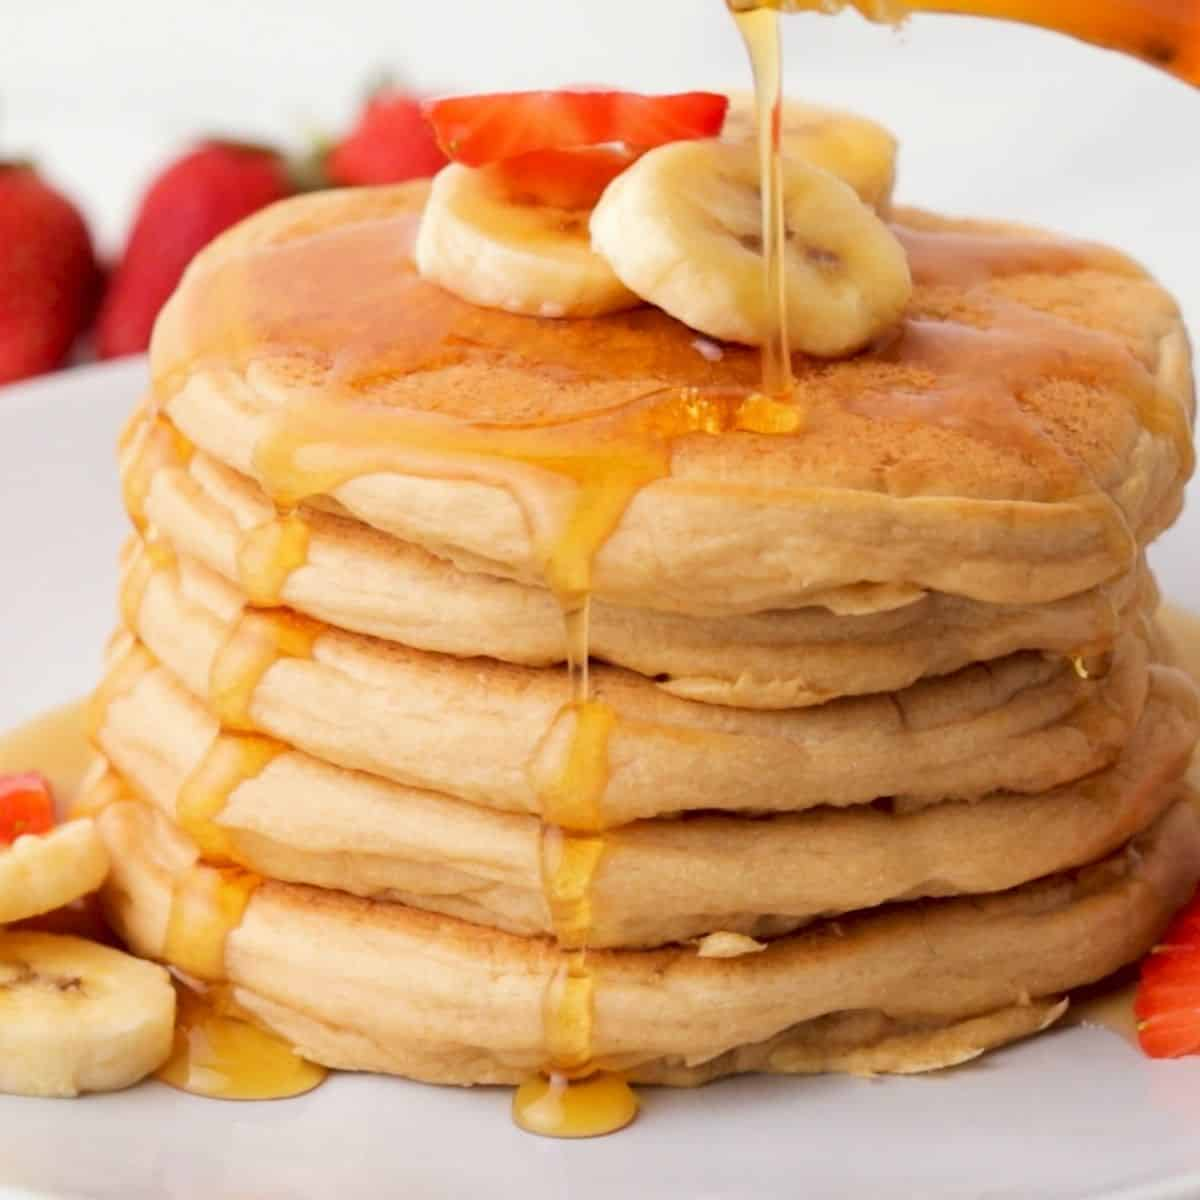 stack of vegan pancakes with banana slices on top and syrup dripping down.